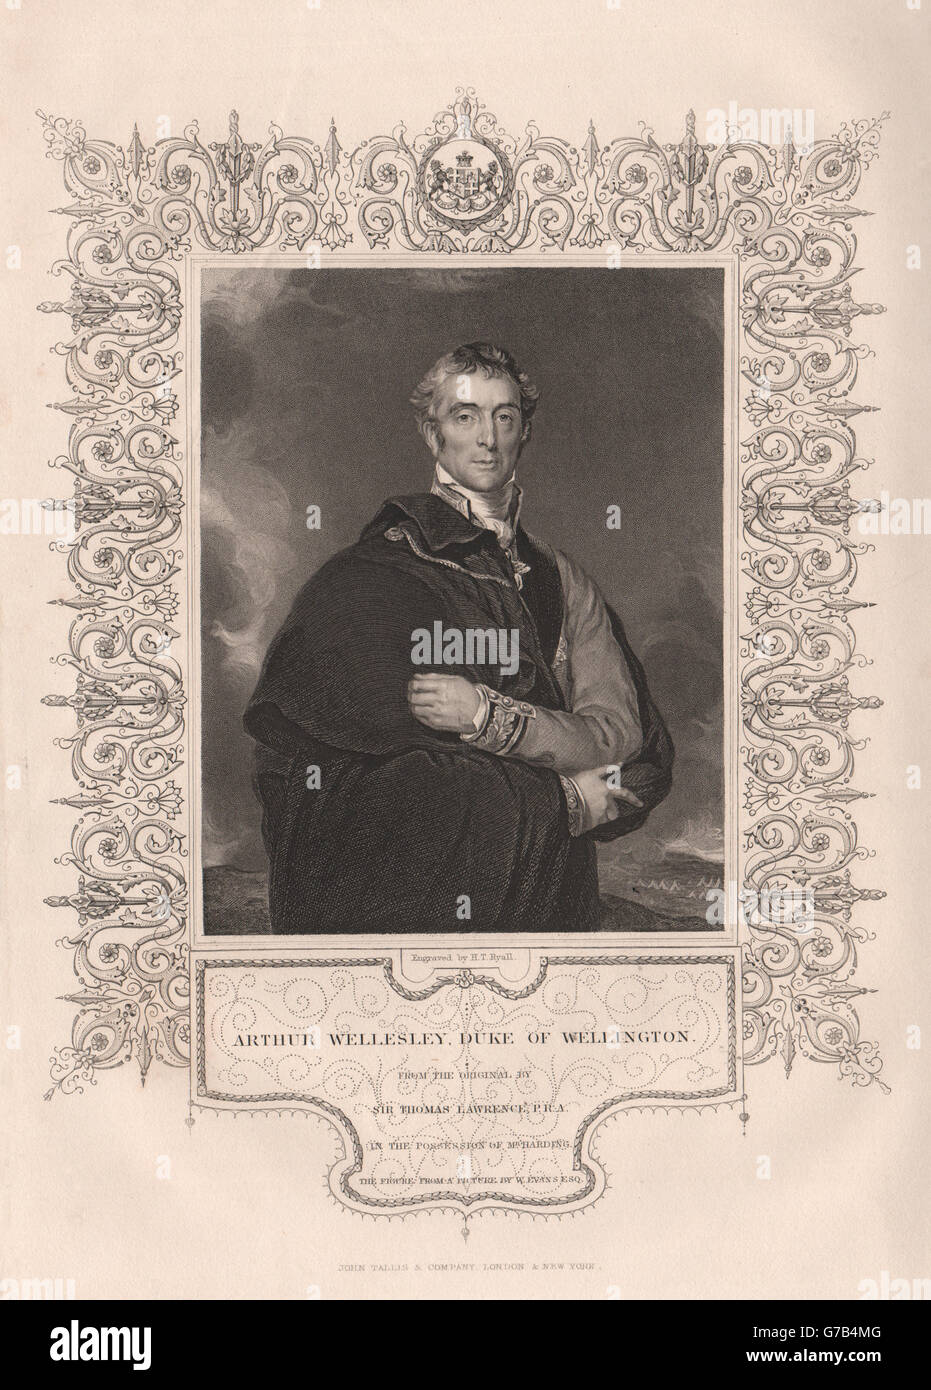 Arthur Wellesley, Duke of Wellington. Ireland. TALLIS, antique print 1853 - Stock Image